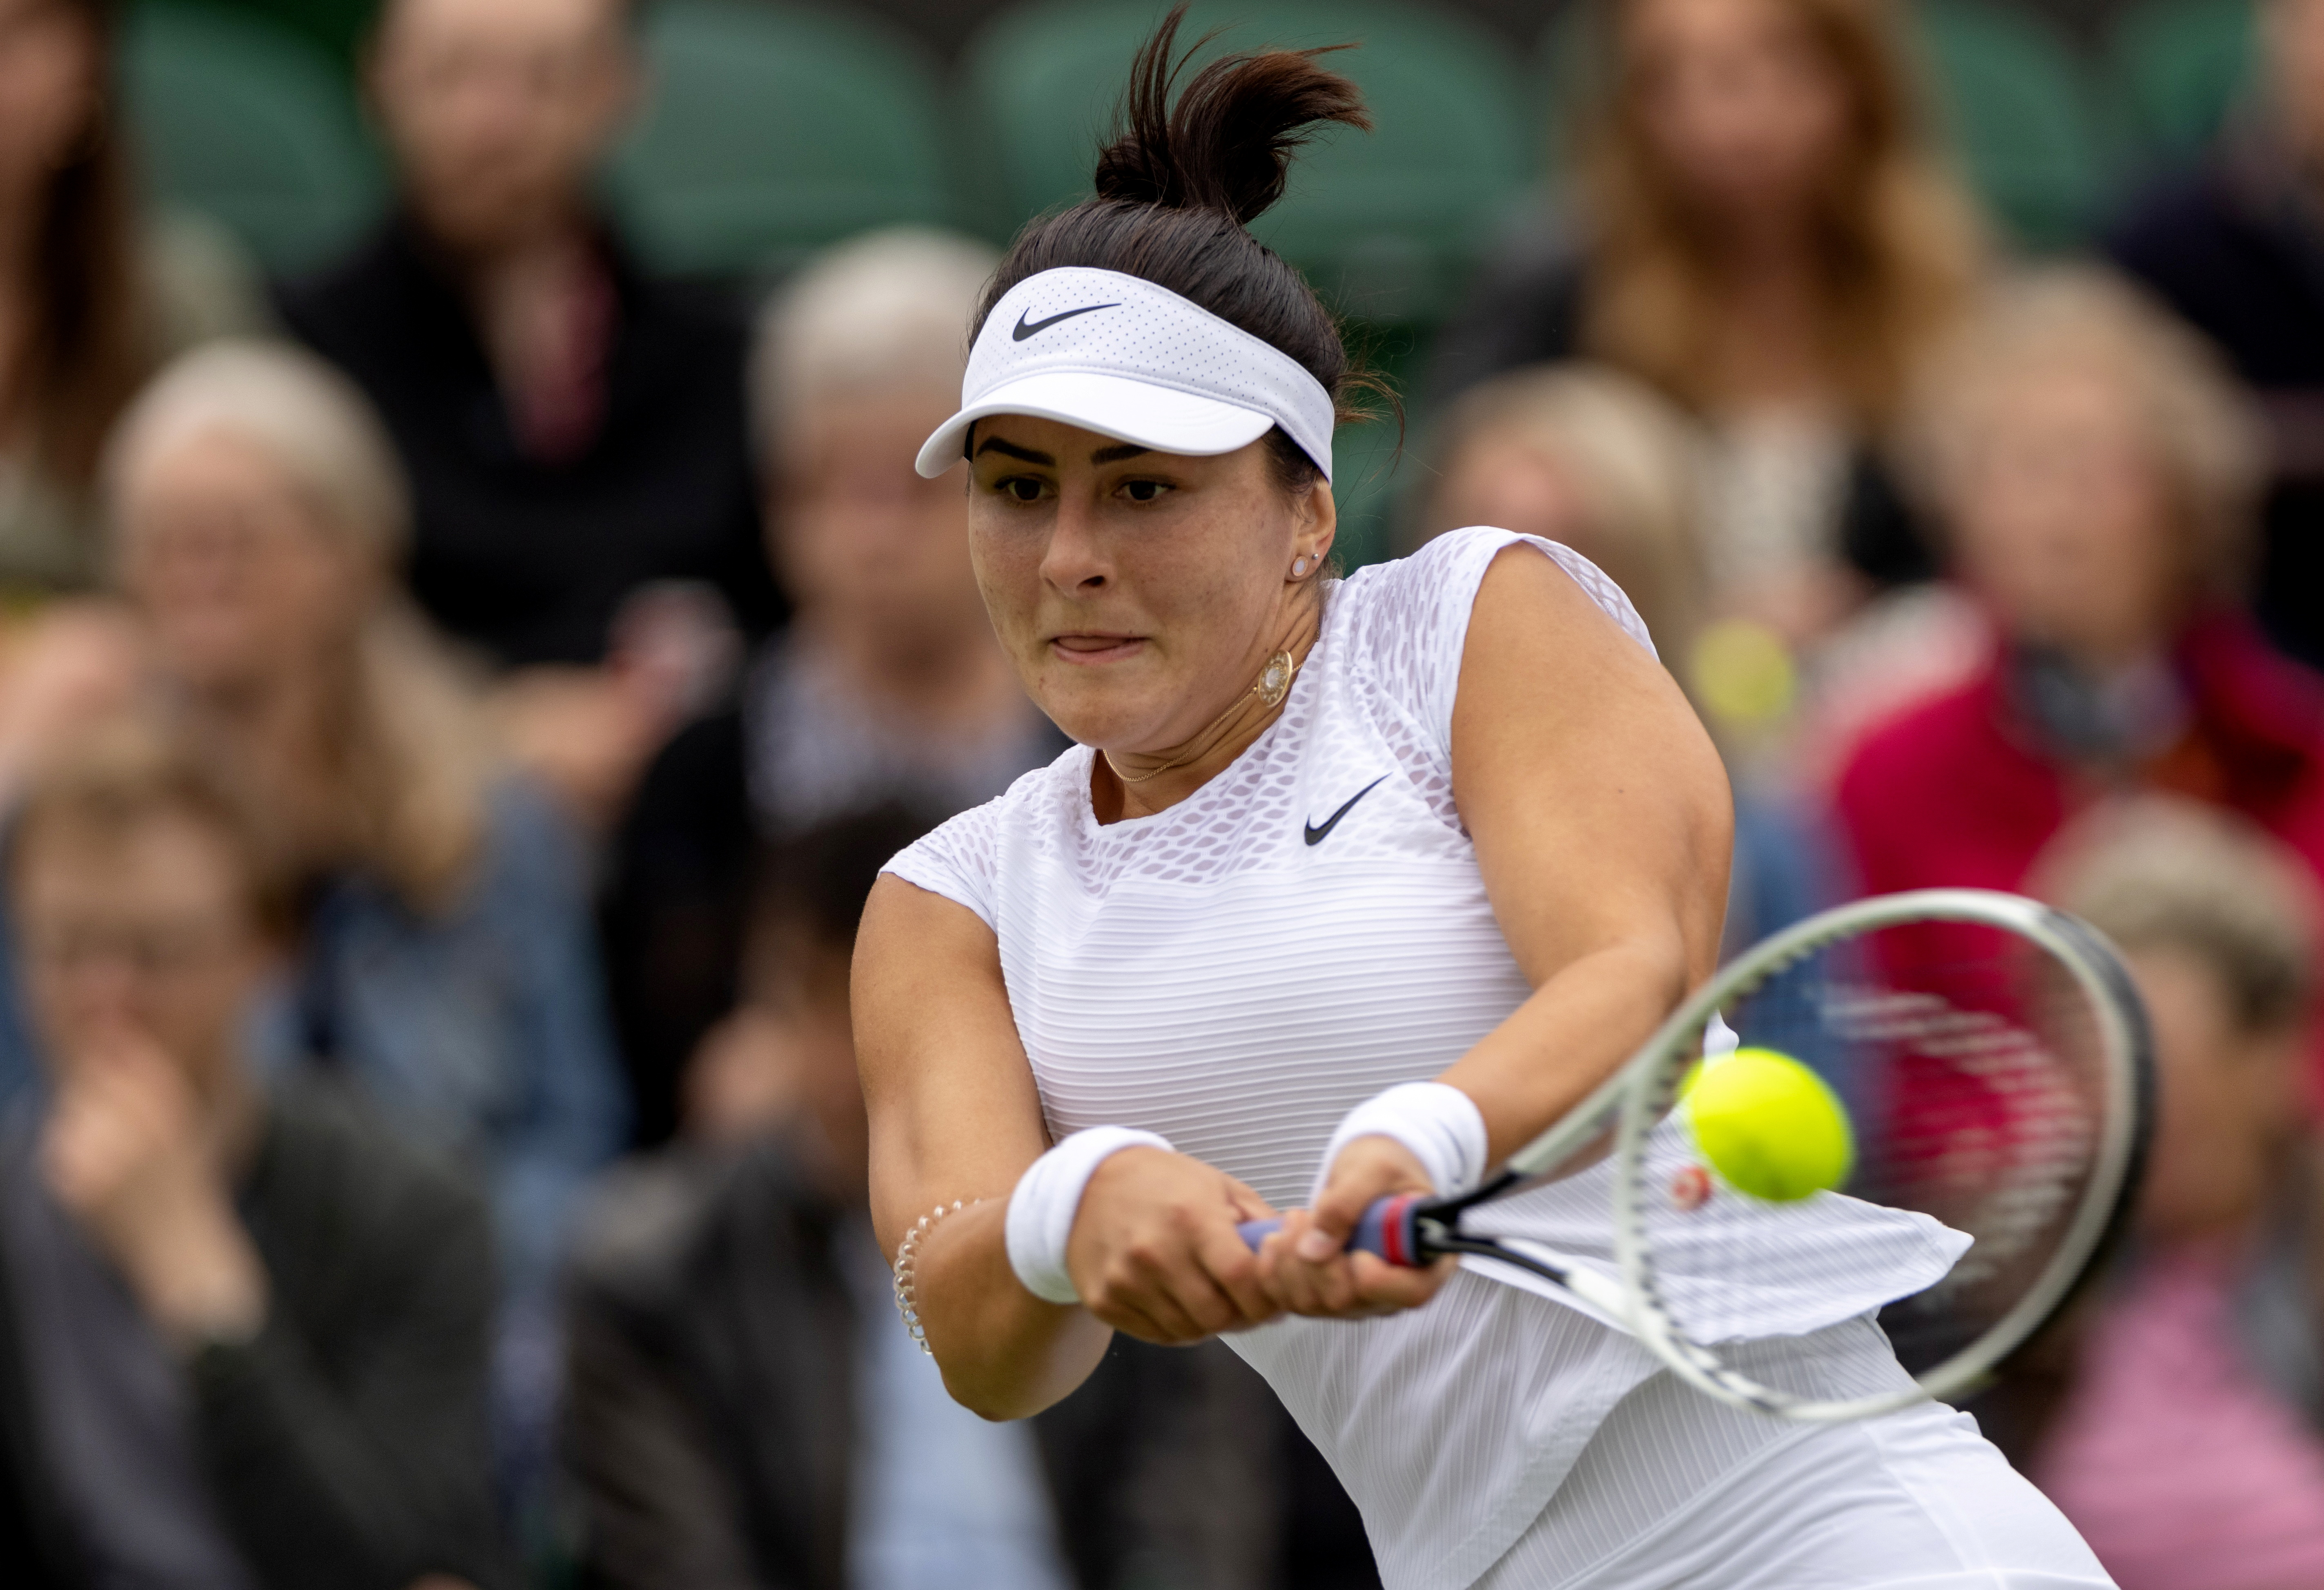 Tennis - Wimbledon - All England Lawn Tennis and Croquet Club, London, Britain - June 30, 2021 Canada's Bianca Andreescu in action during her first round match against France's Alize Cornet Pool via REUTERS/Aeltc/simon Bruty/File Photo